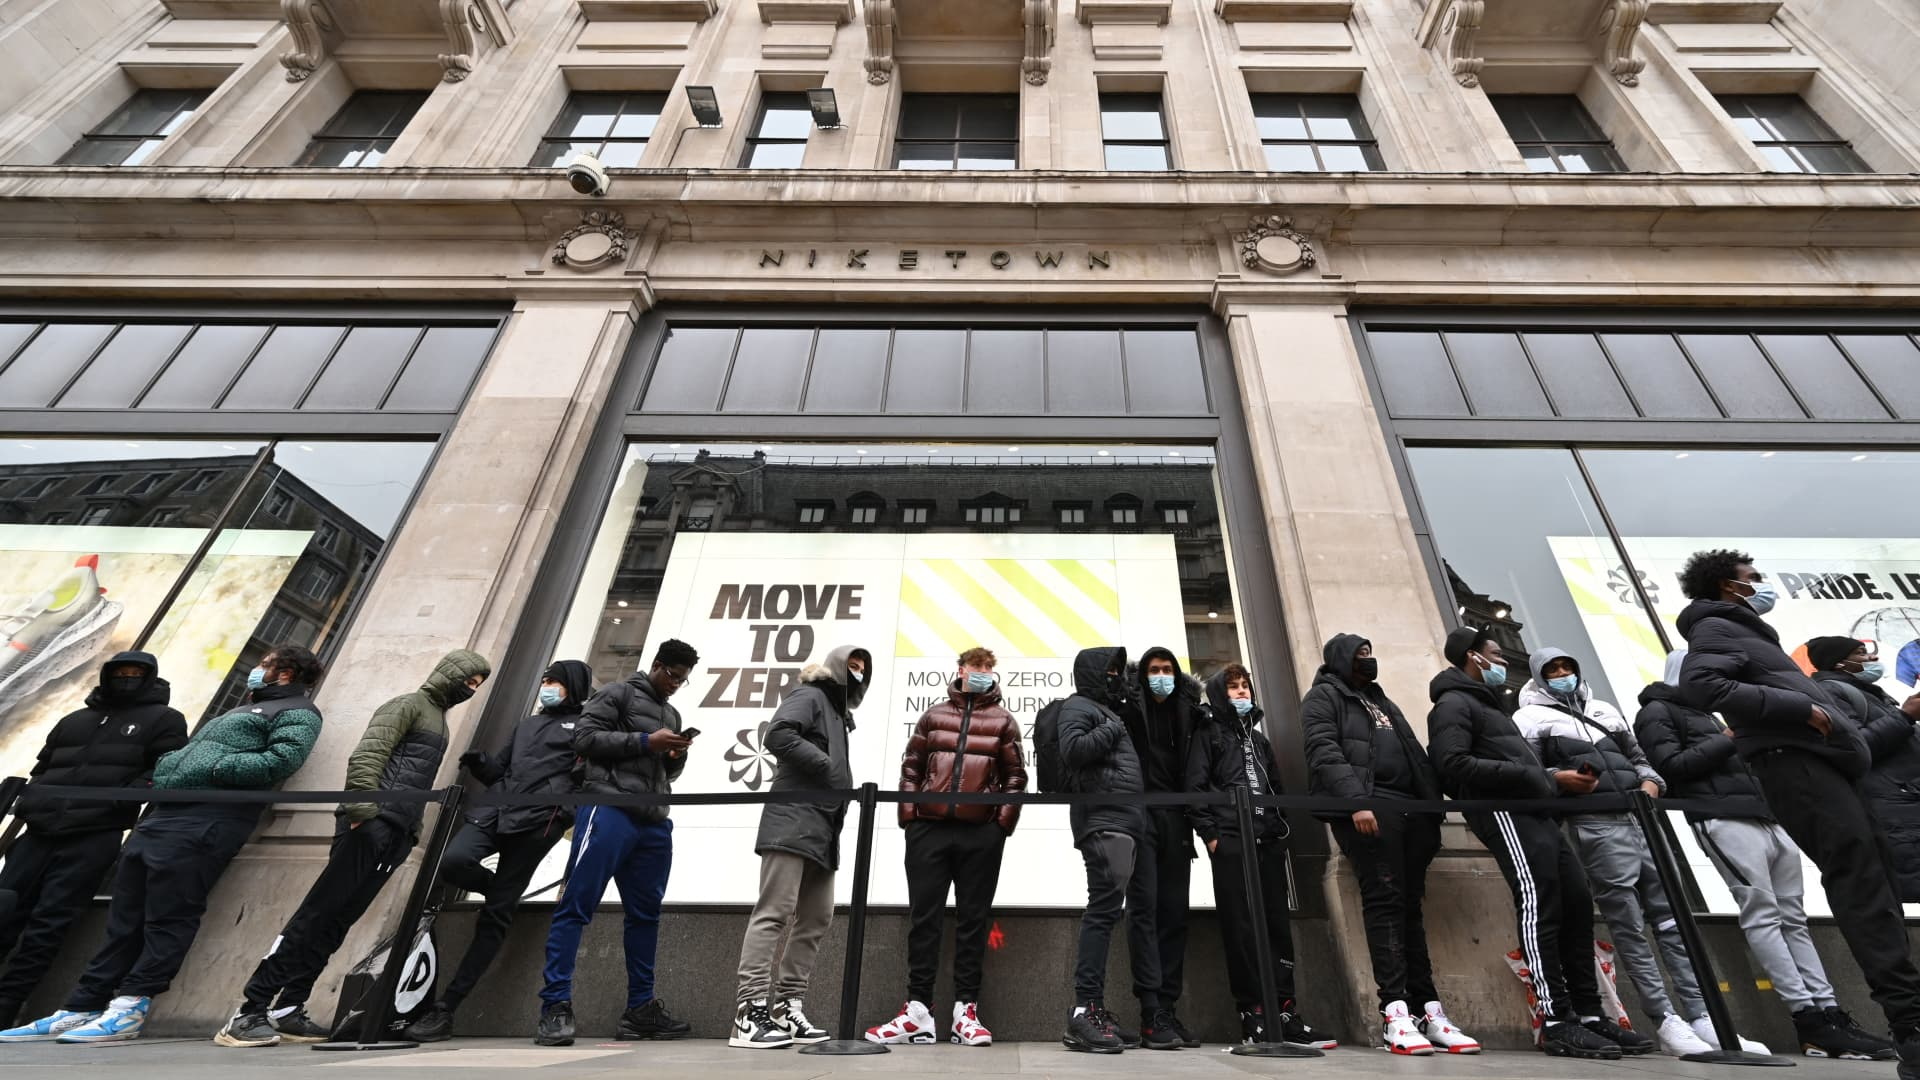 Shoppers queue outside a Nike store in central London as coronavirus restrictions are eased across the country on April 12, 2021.